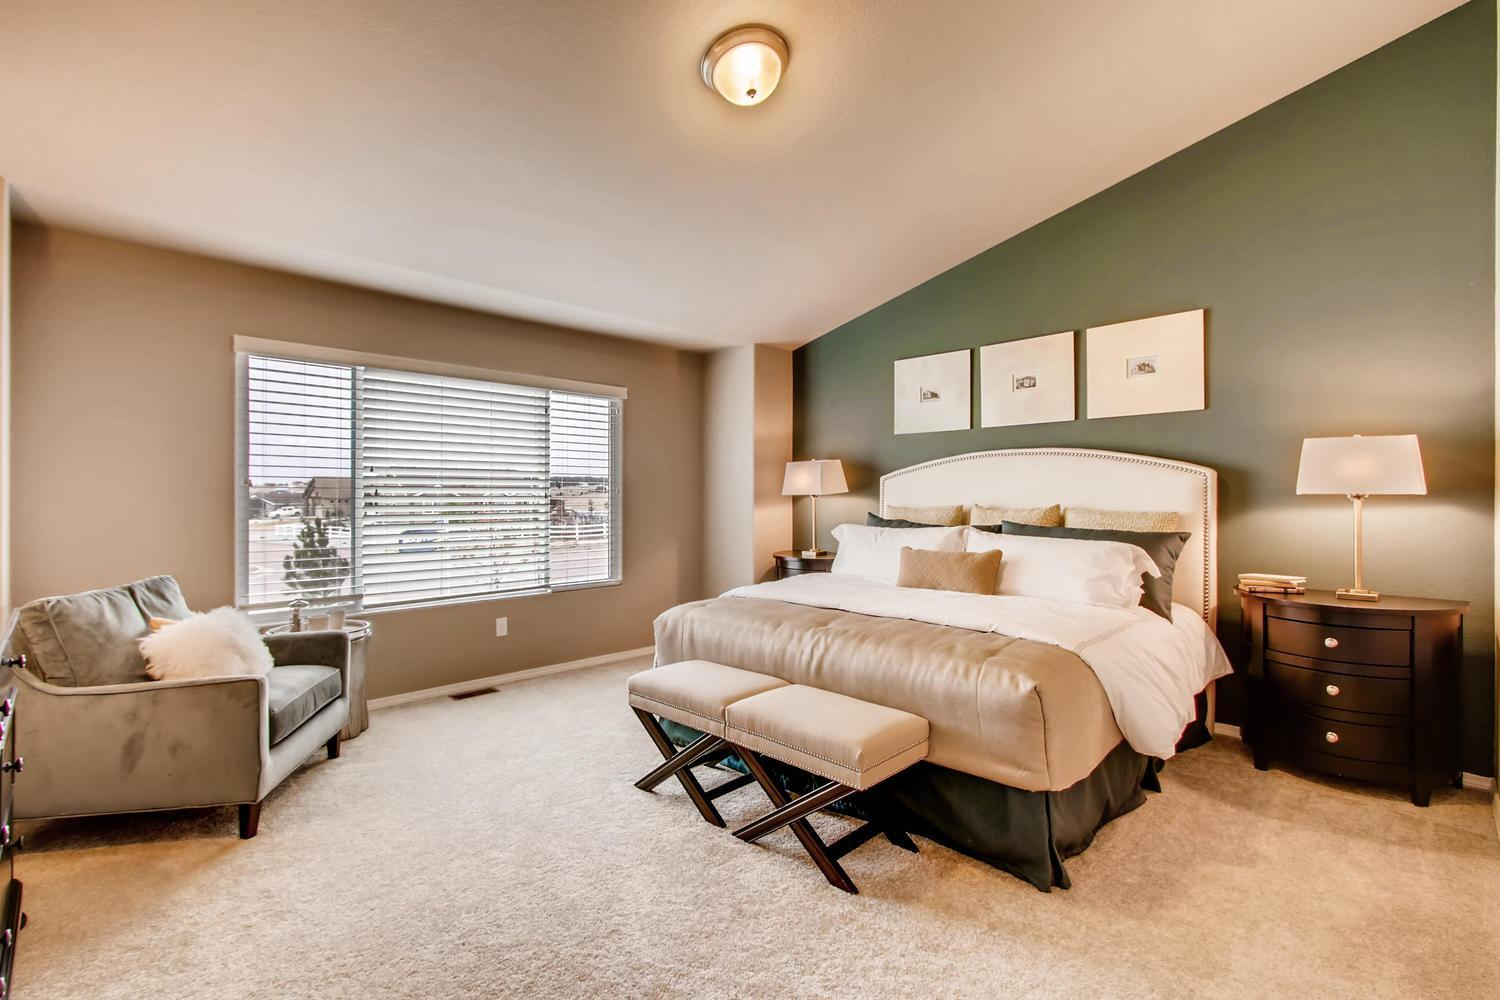 Bedroom featured in the Raintree By Campbell Homes in Colorado Springs, CO